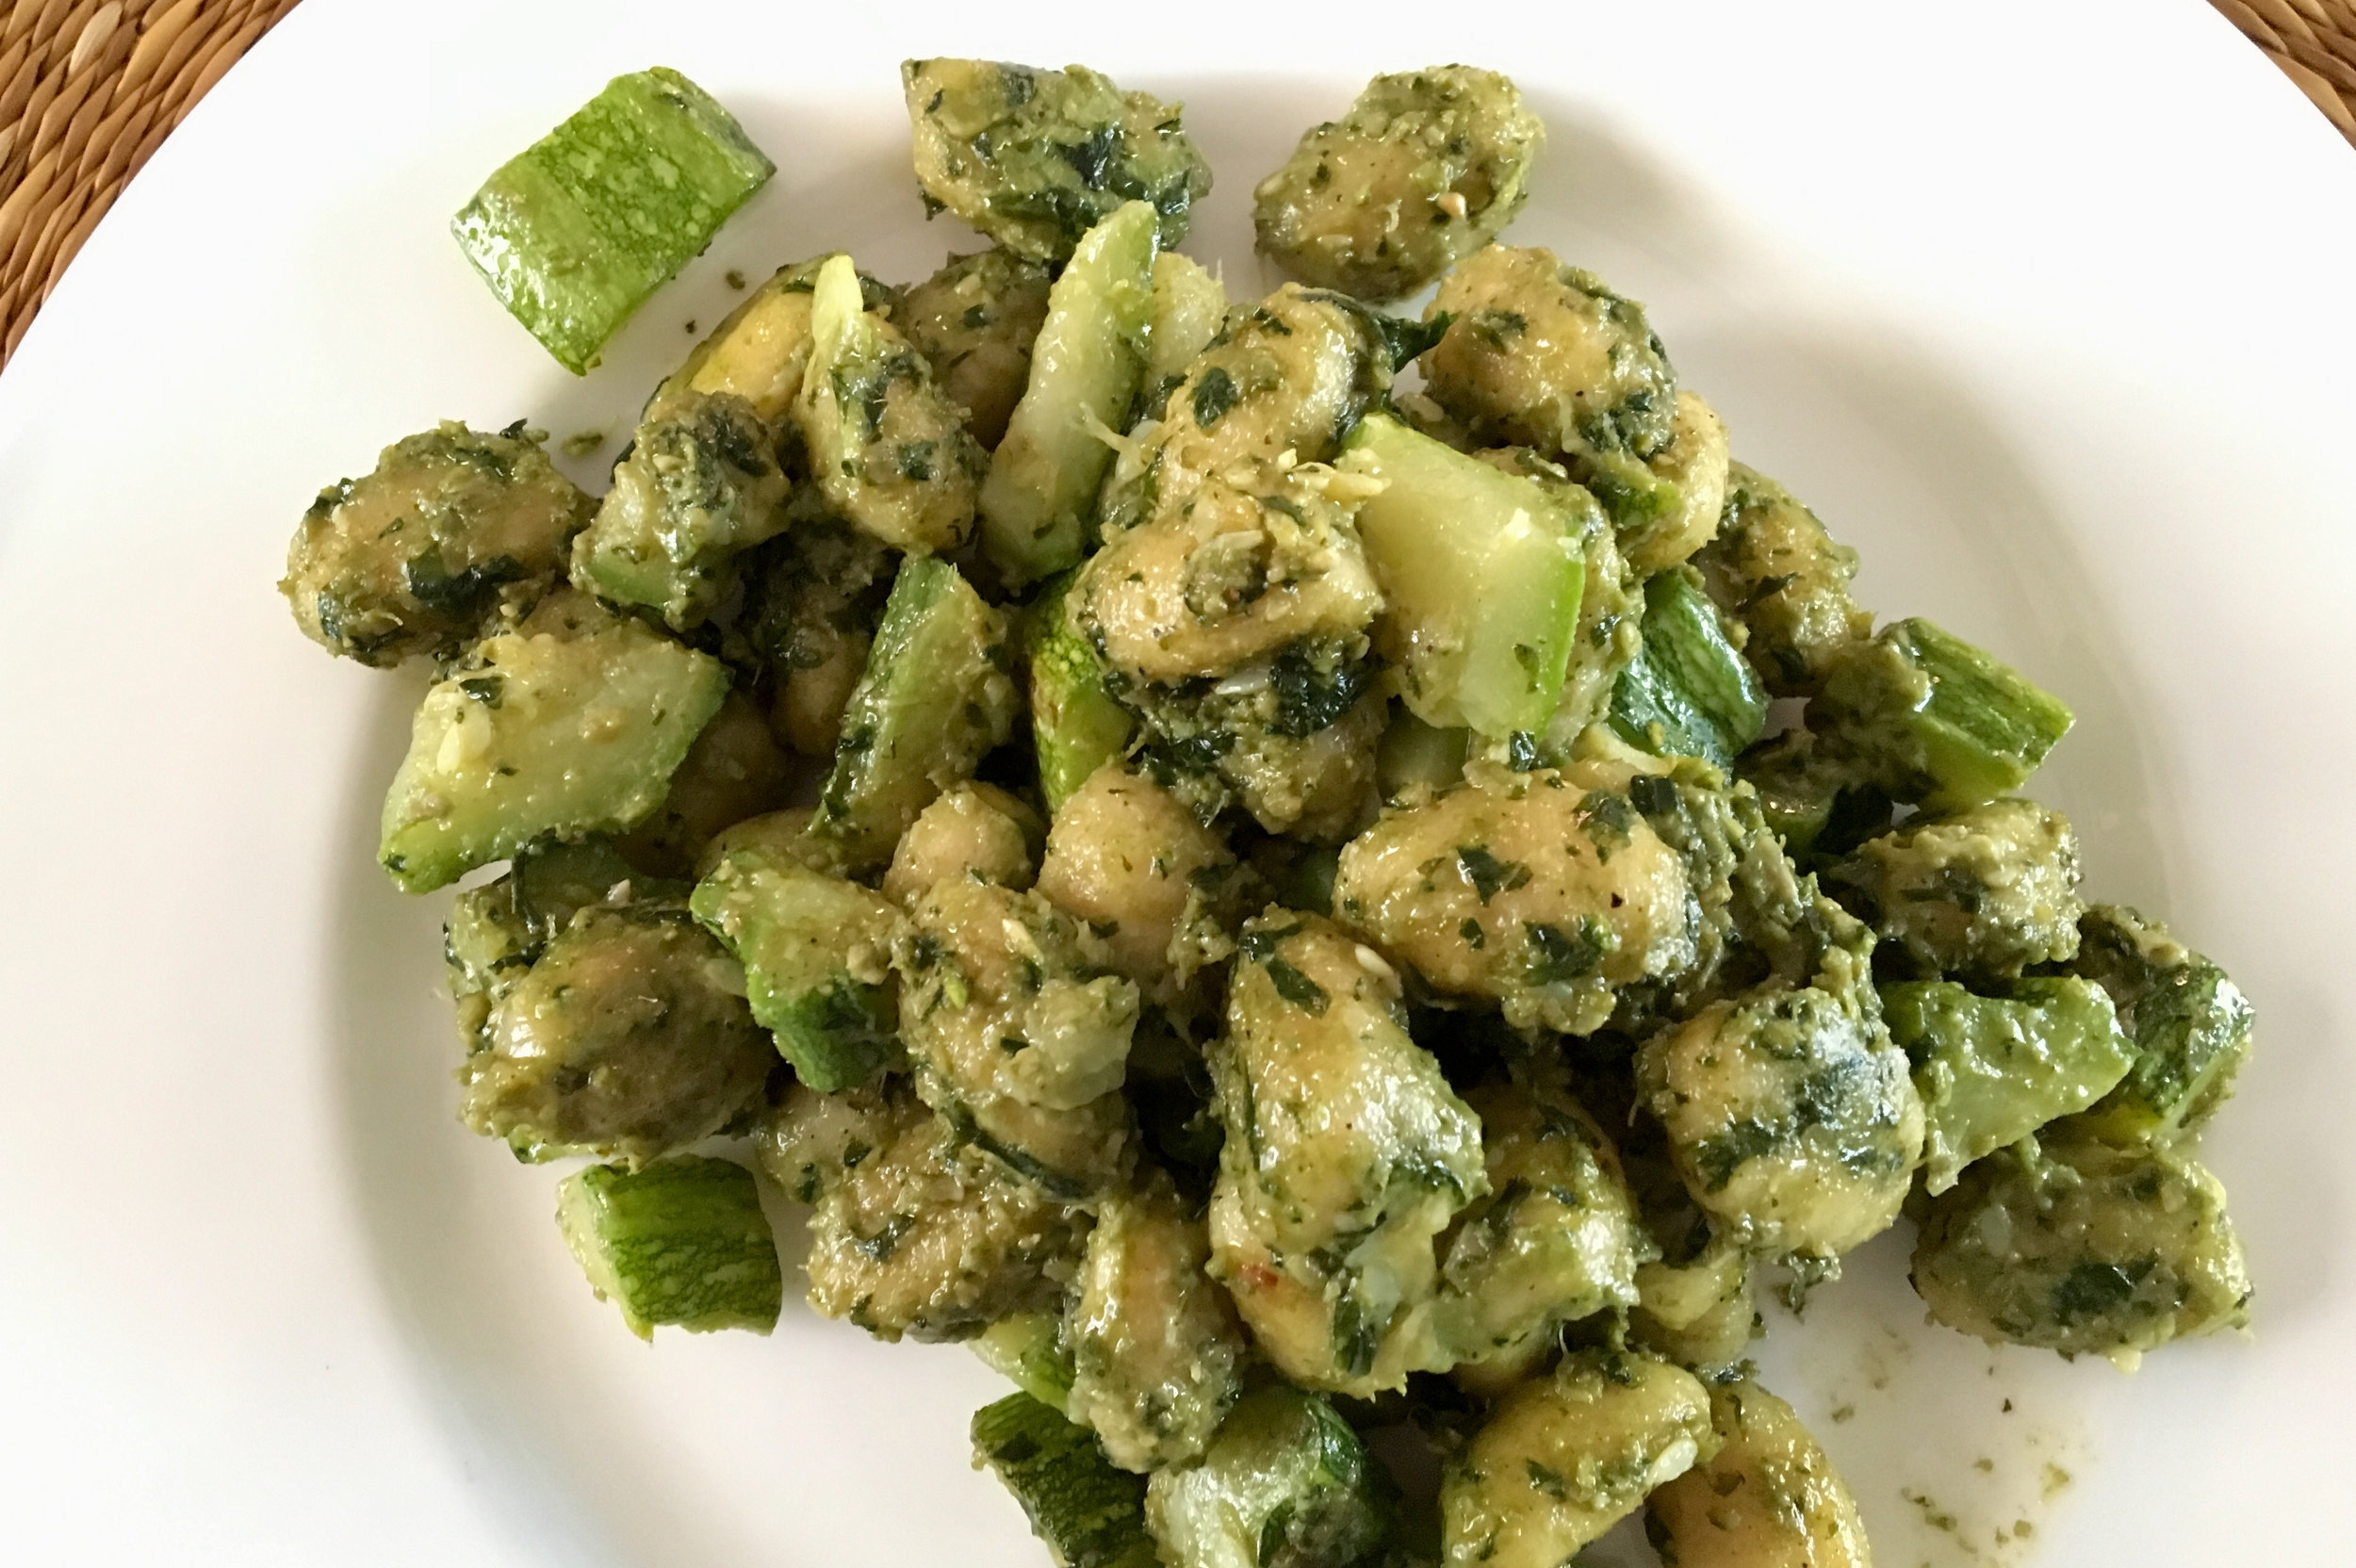 Homemade pesto with courgettes and gnocchi